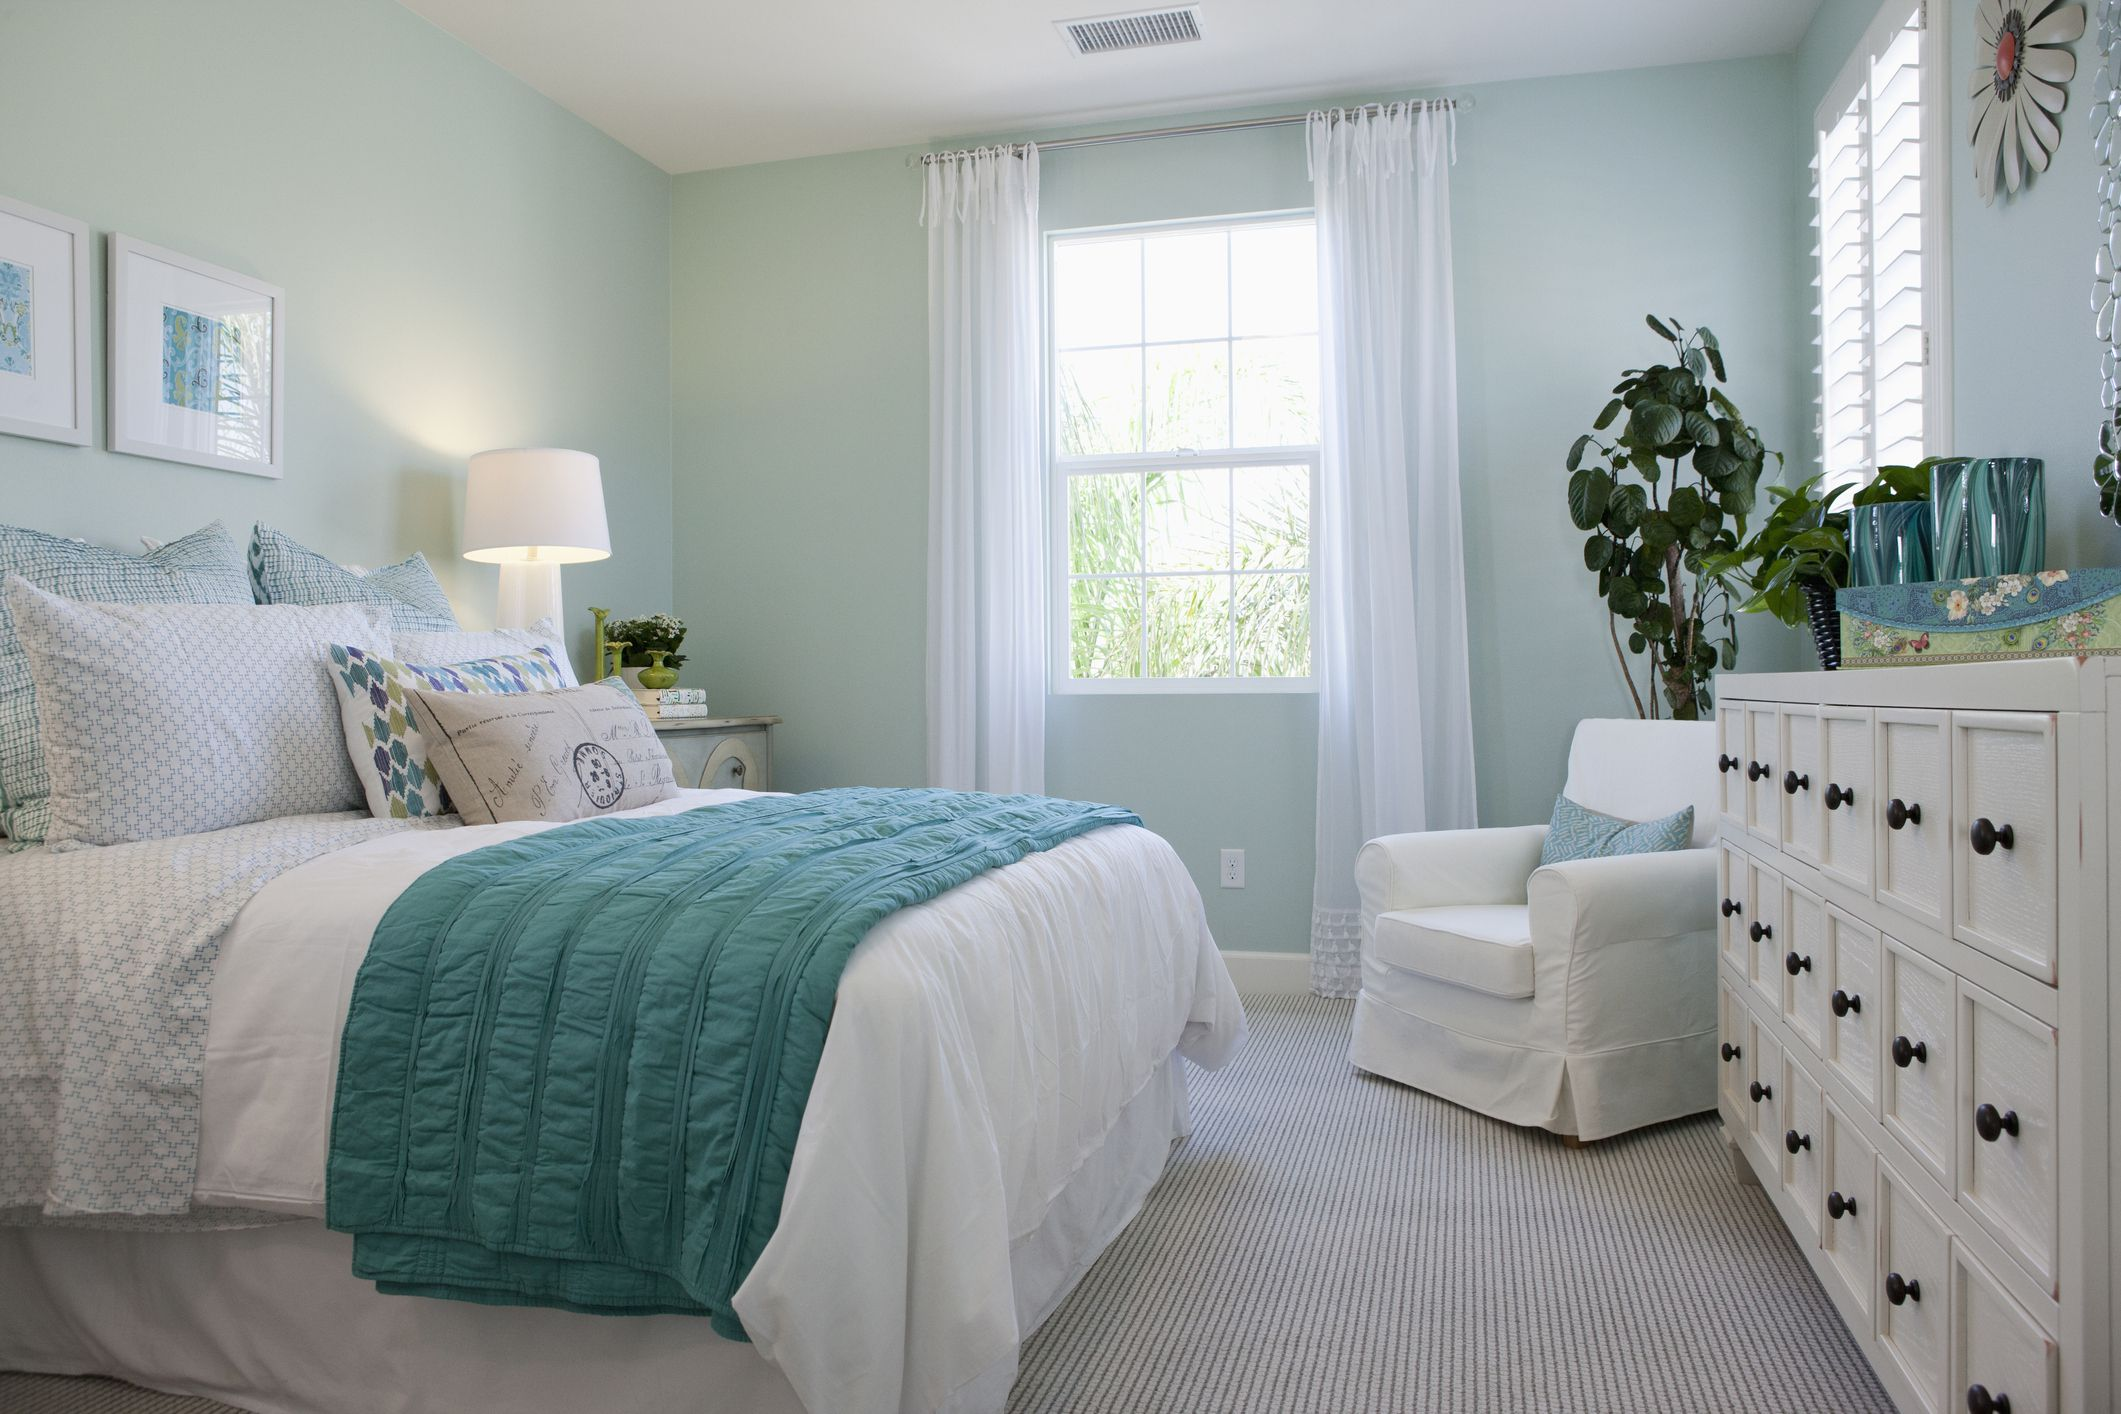 How to Choose the Right Paint Colors for Your Bedroom on Good Bedroom Ideas For Small Rooms  id=20970